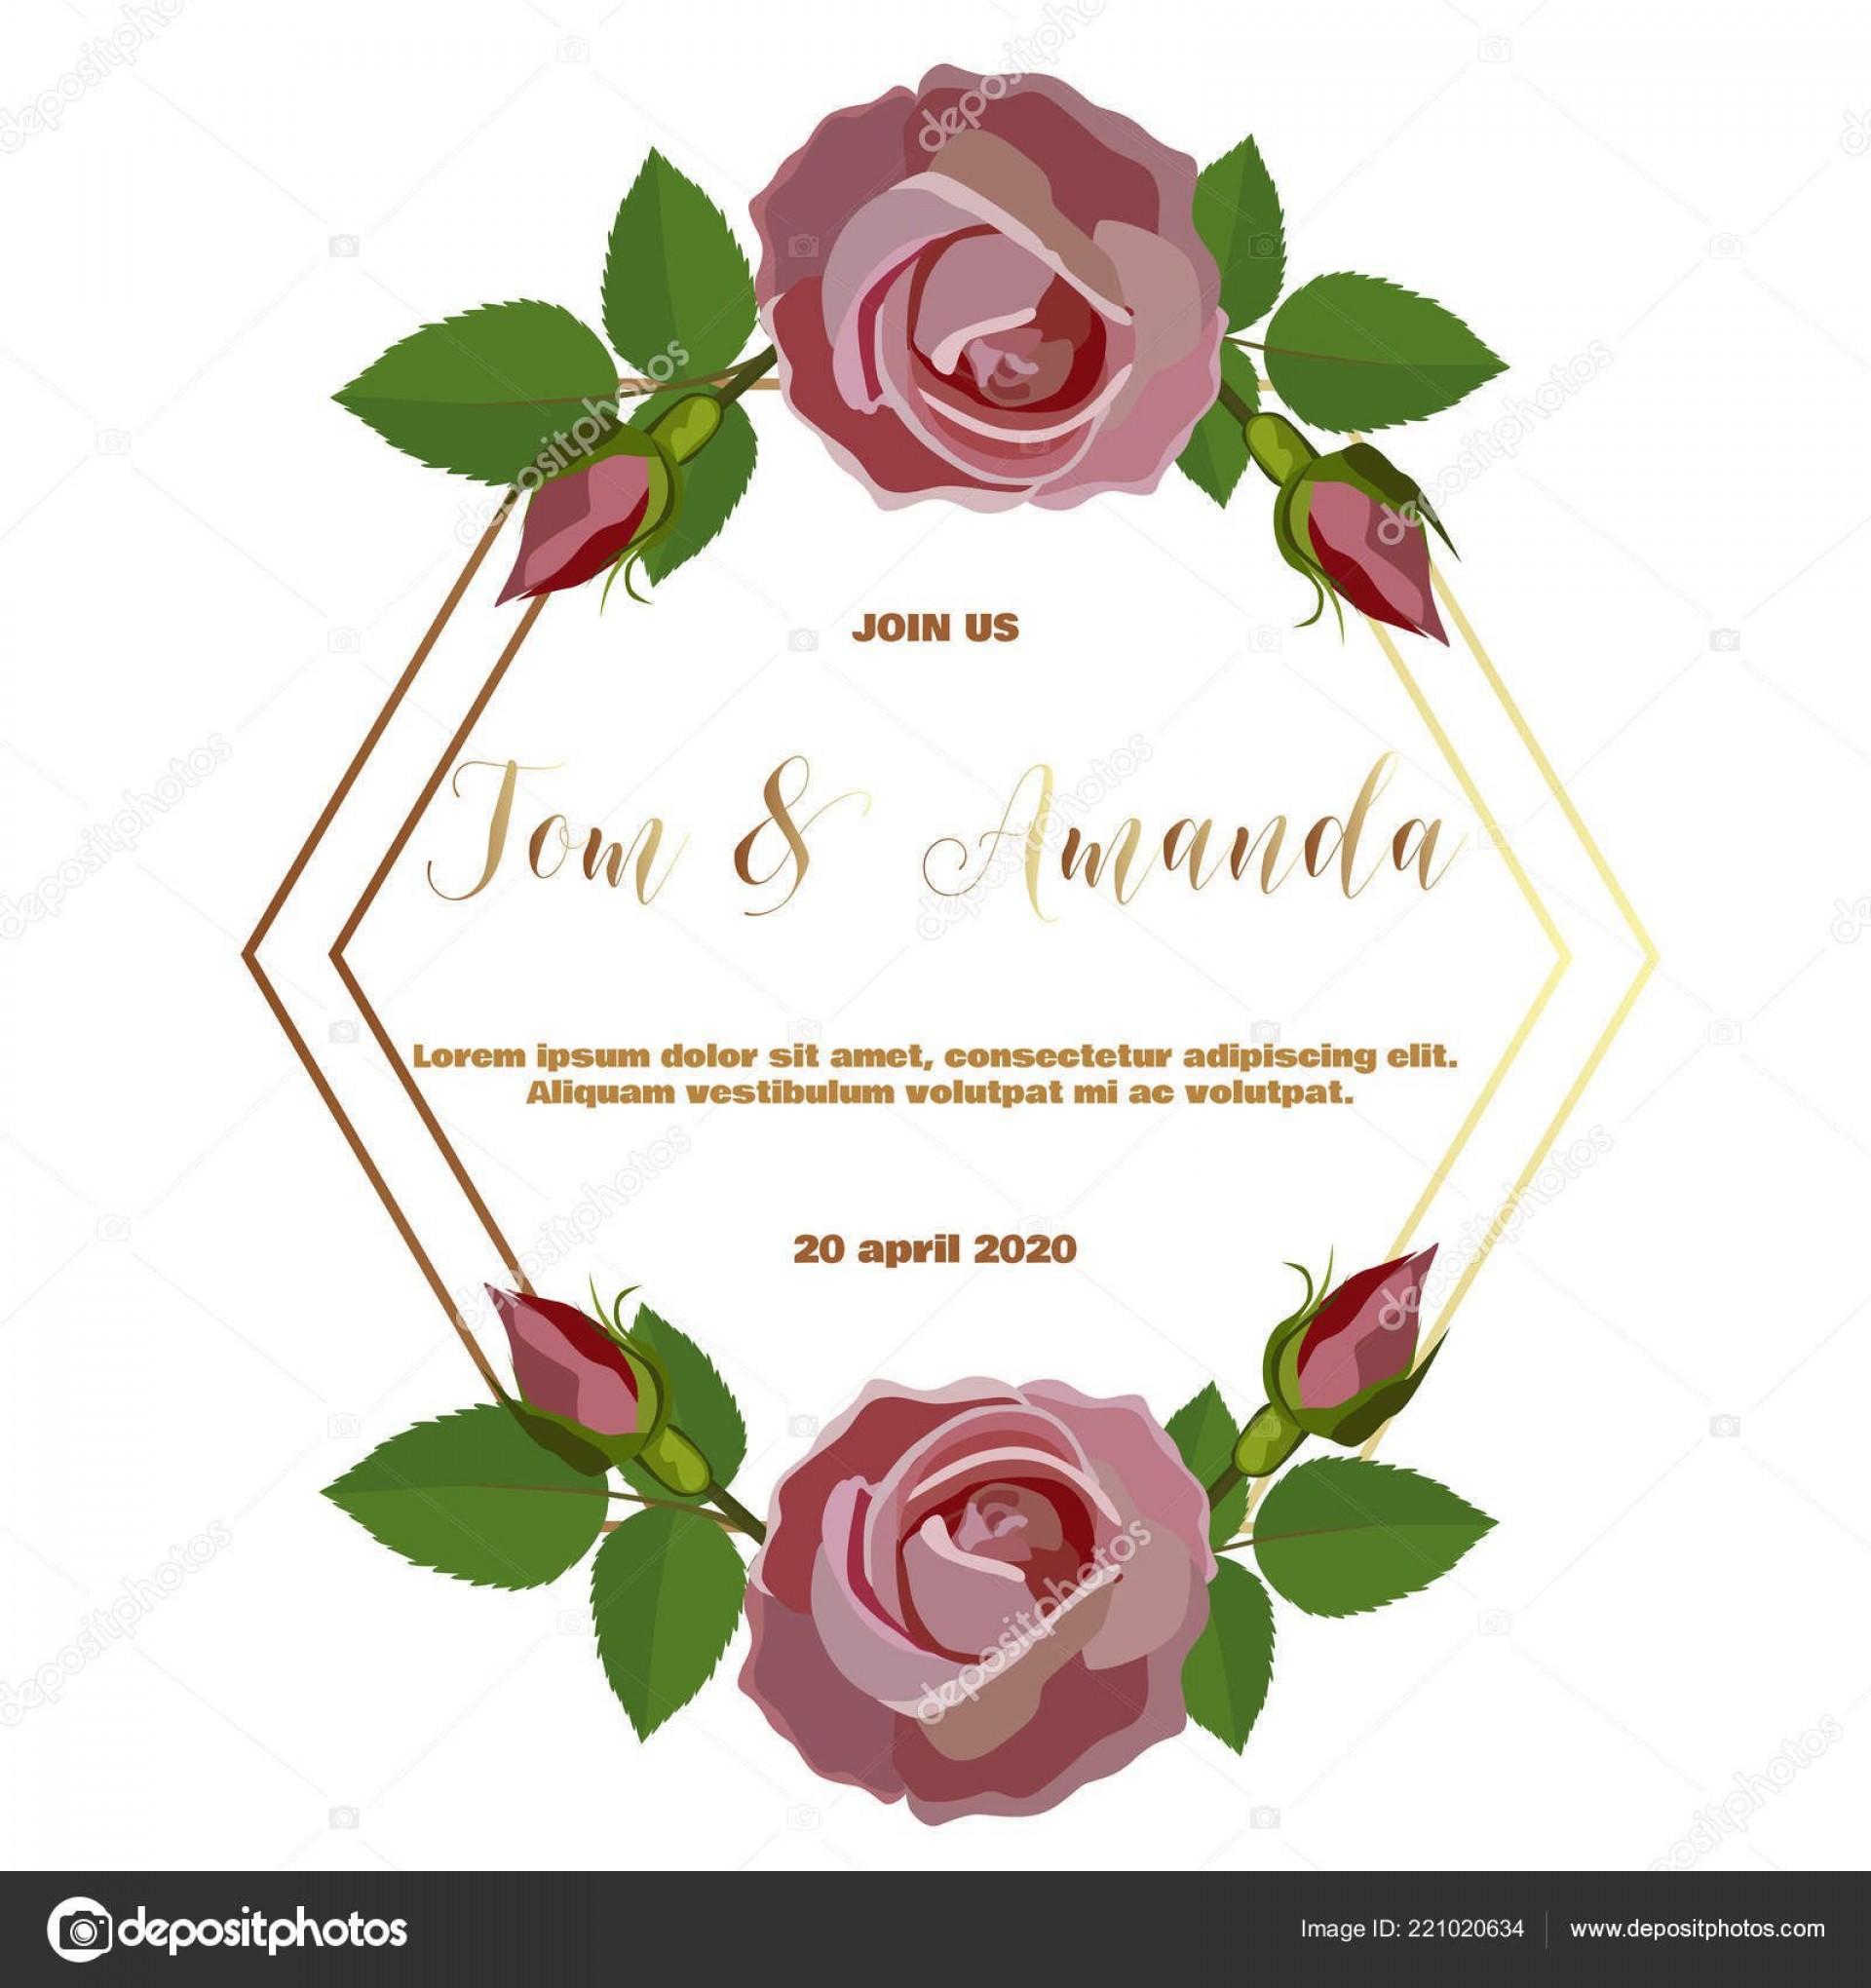 005 Breathtaking Rustic Wedding Invitation Template Highest Clarity  Templates Free For Word Maker Photoshop1920